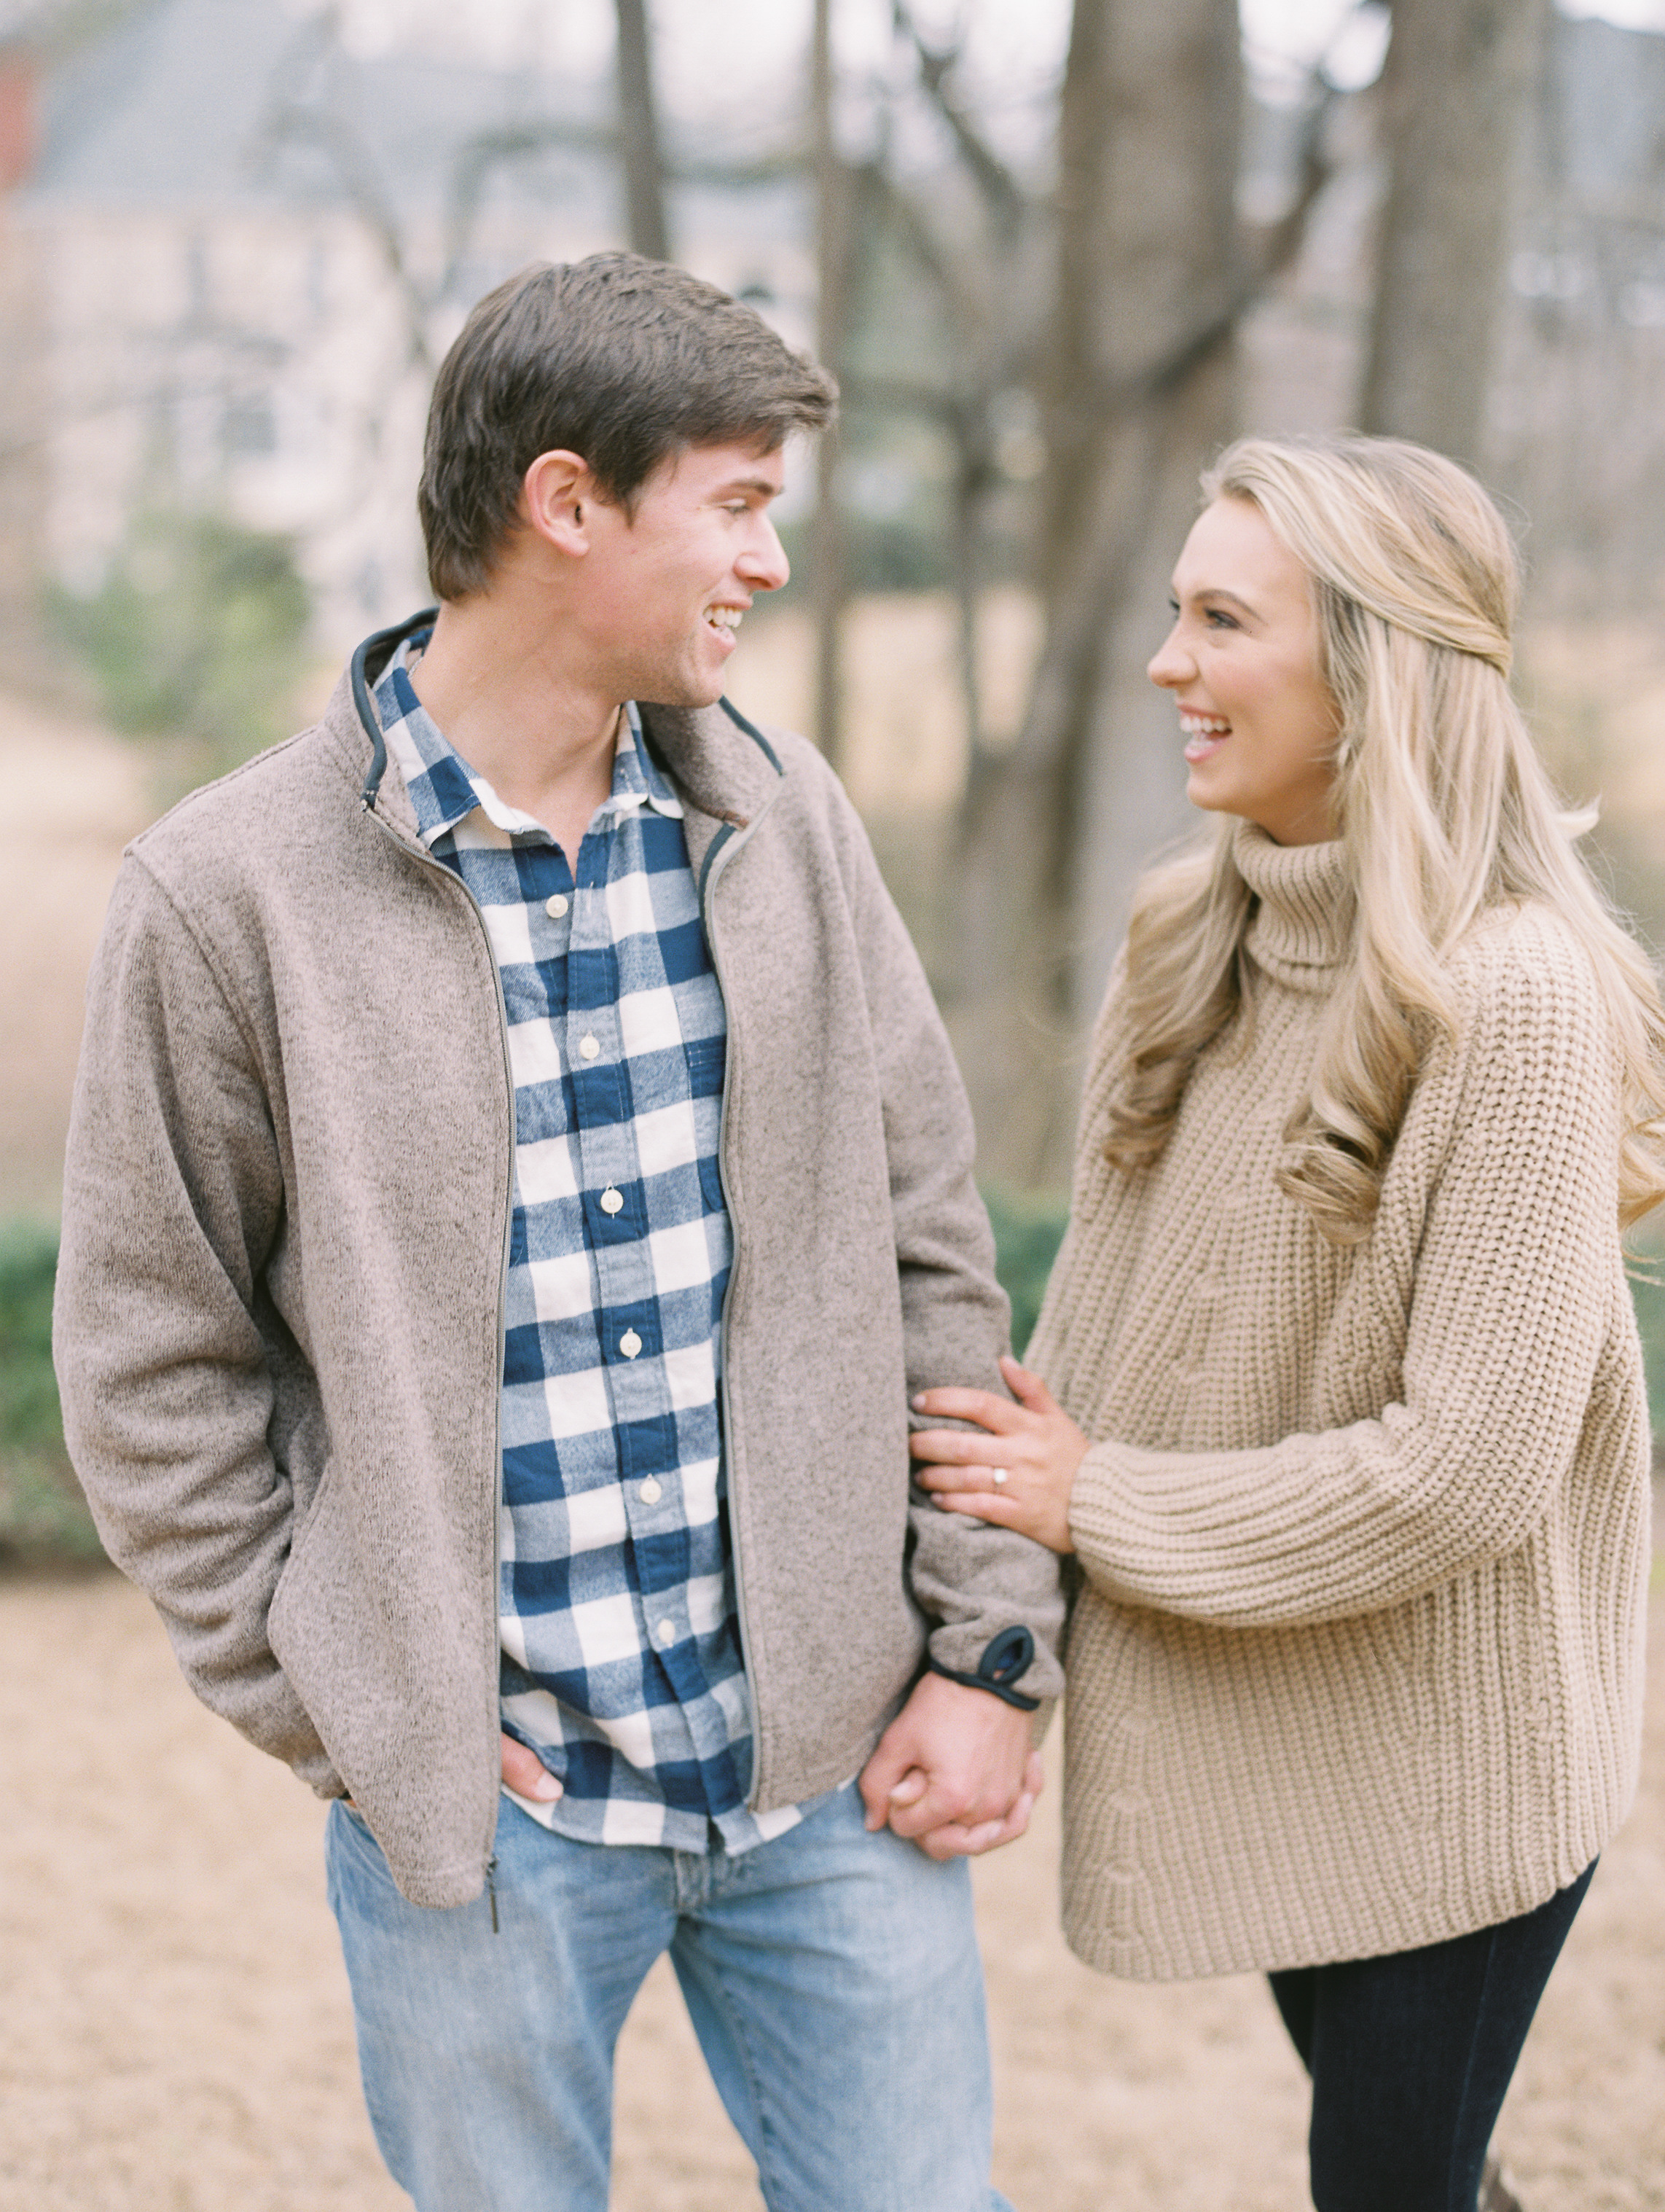 Hannah-forsberg-engagement-proposal-photographer-atlanta-5.jpg